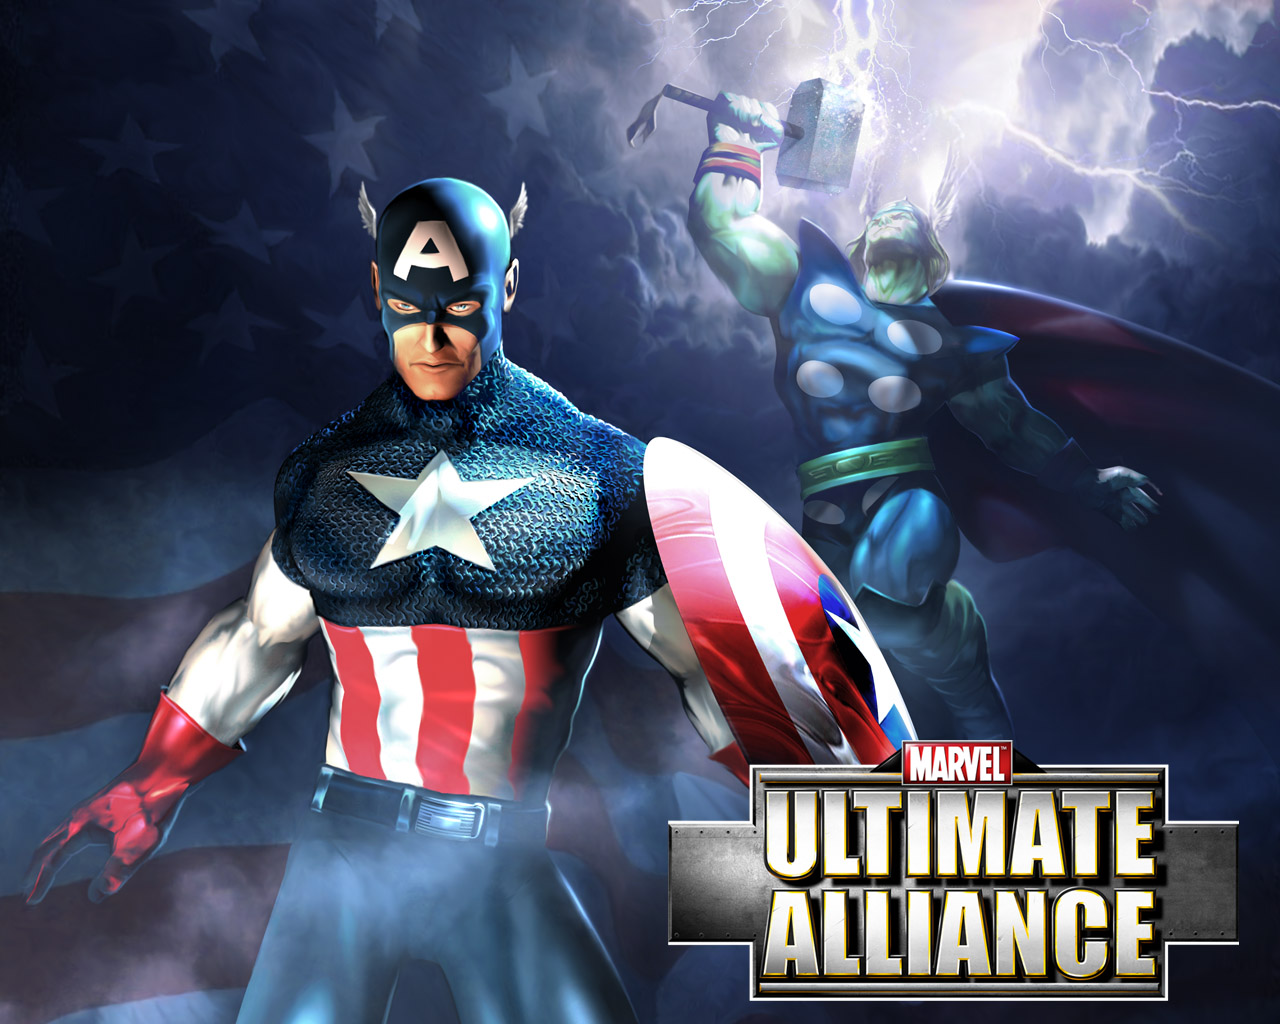 wallpaper alliance ultimate - photo #26